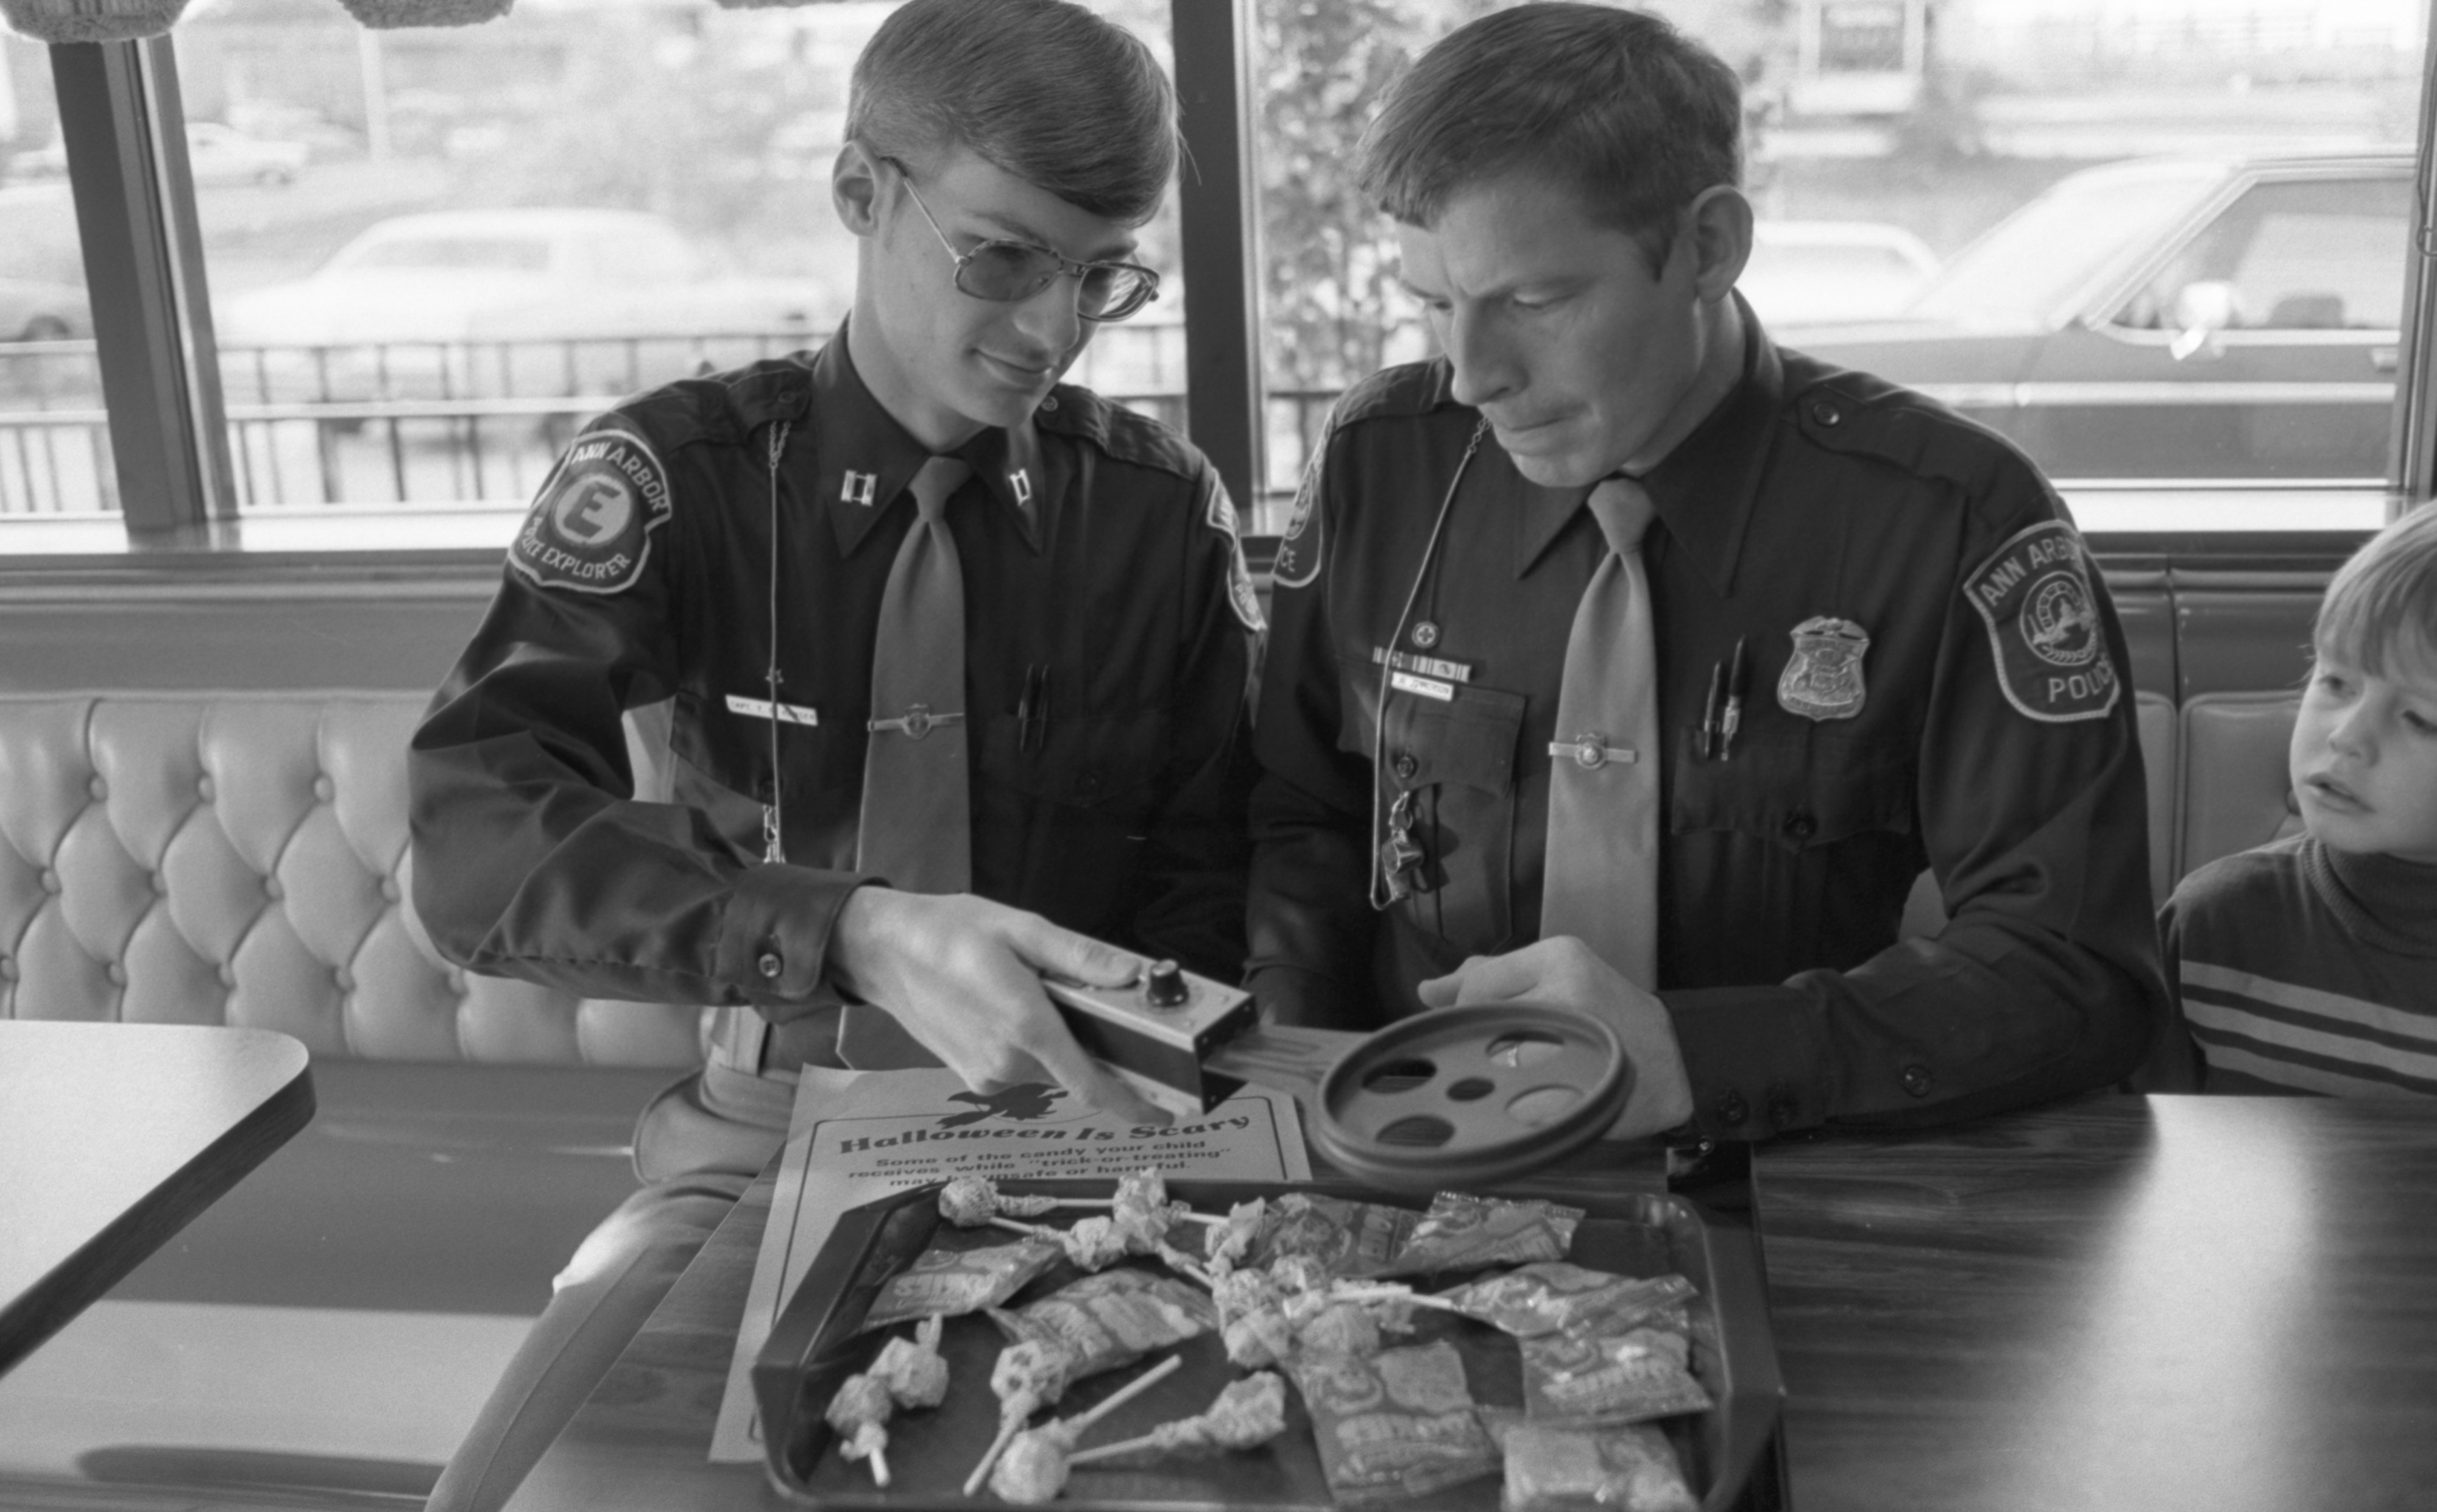 Todd Hansen, Explorer Scout, & Harry Jinkerson, Ann Arbor Police Officer, Test A Metal Detector On Halloween Candy, October 1981 image